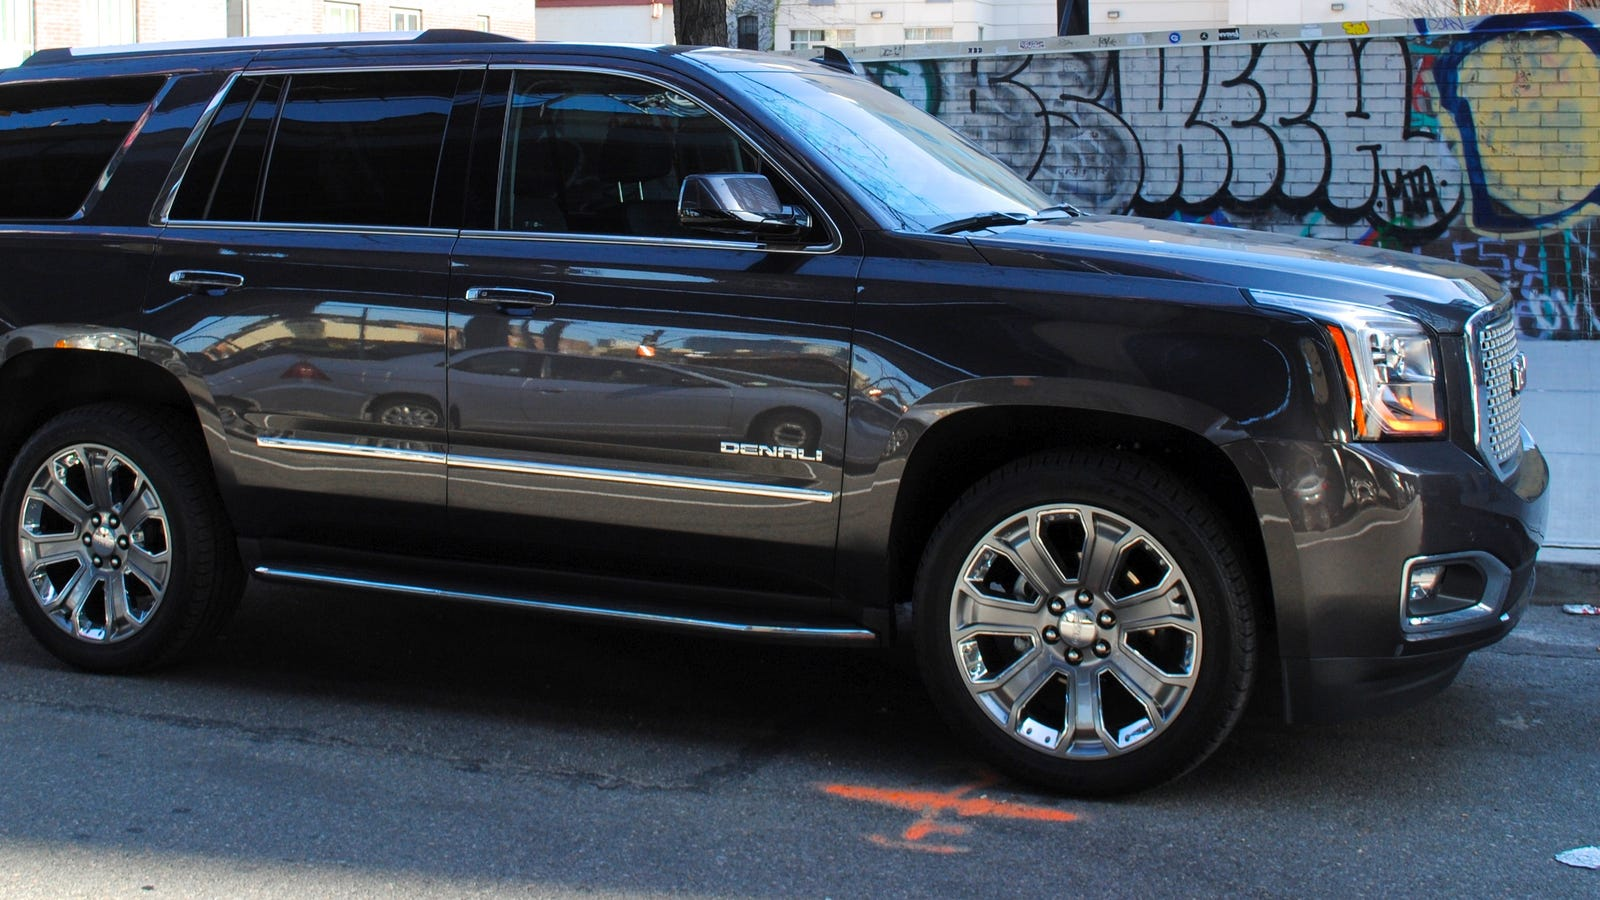 2016 GMC Yukon Denali: Will It Baby?